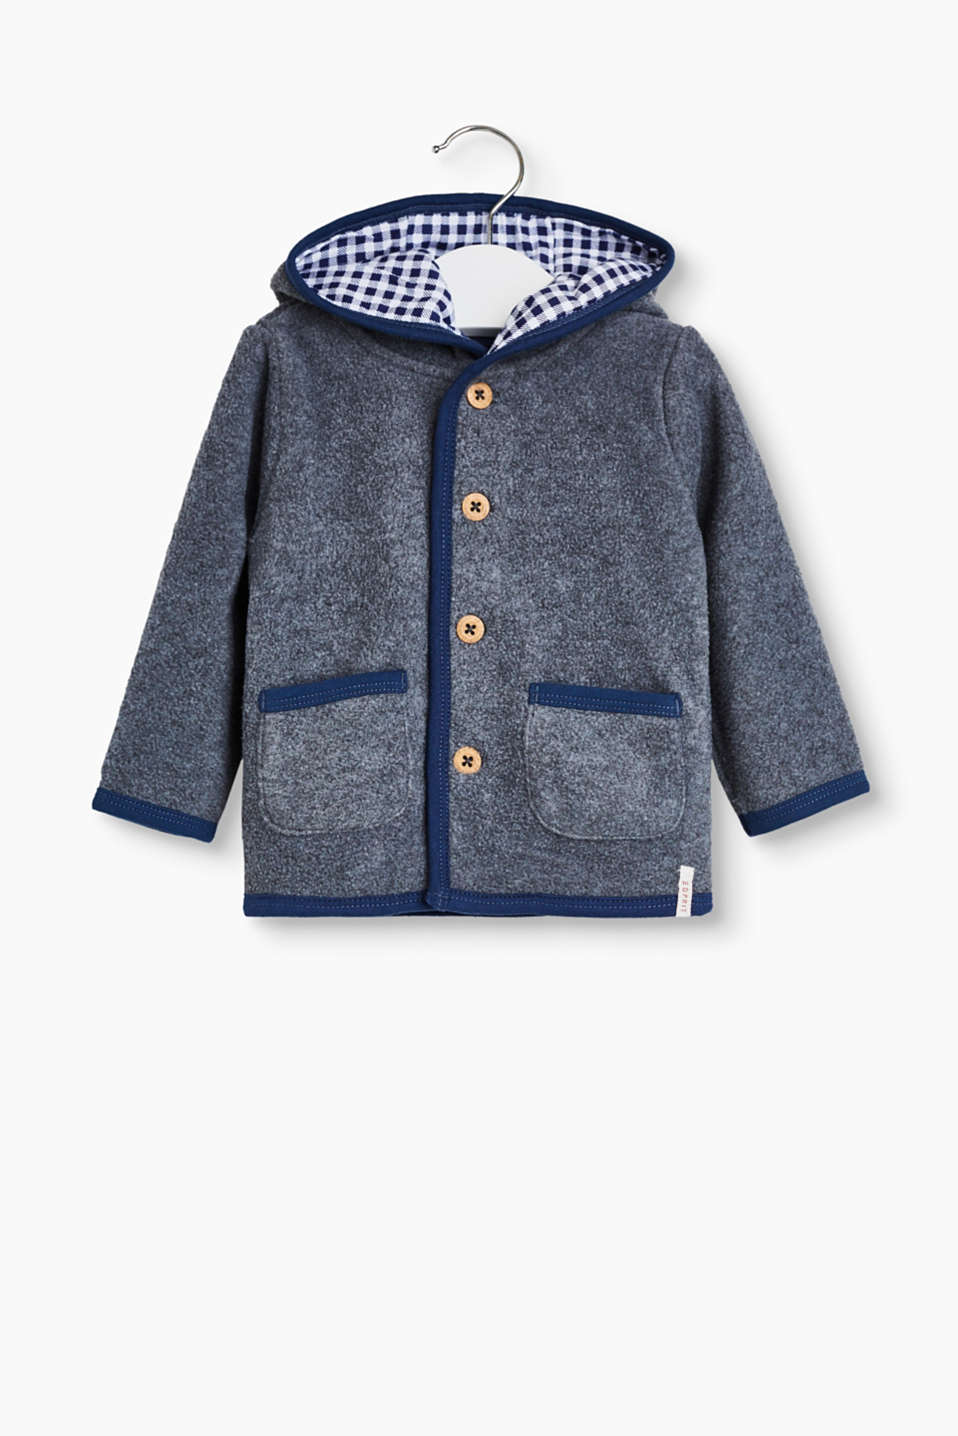 Off to Oktoberfest! In this cute sweatshirt cardigan with four distinctive buttons and a hat with a check lining